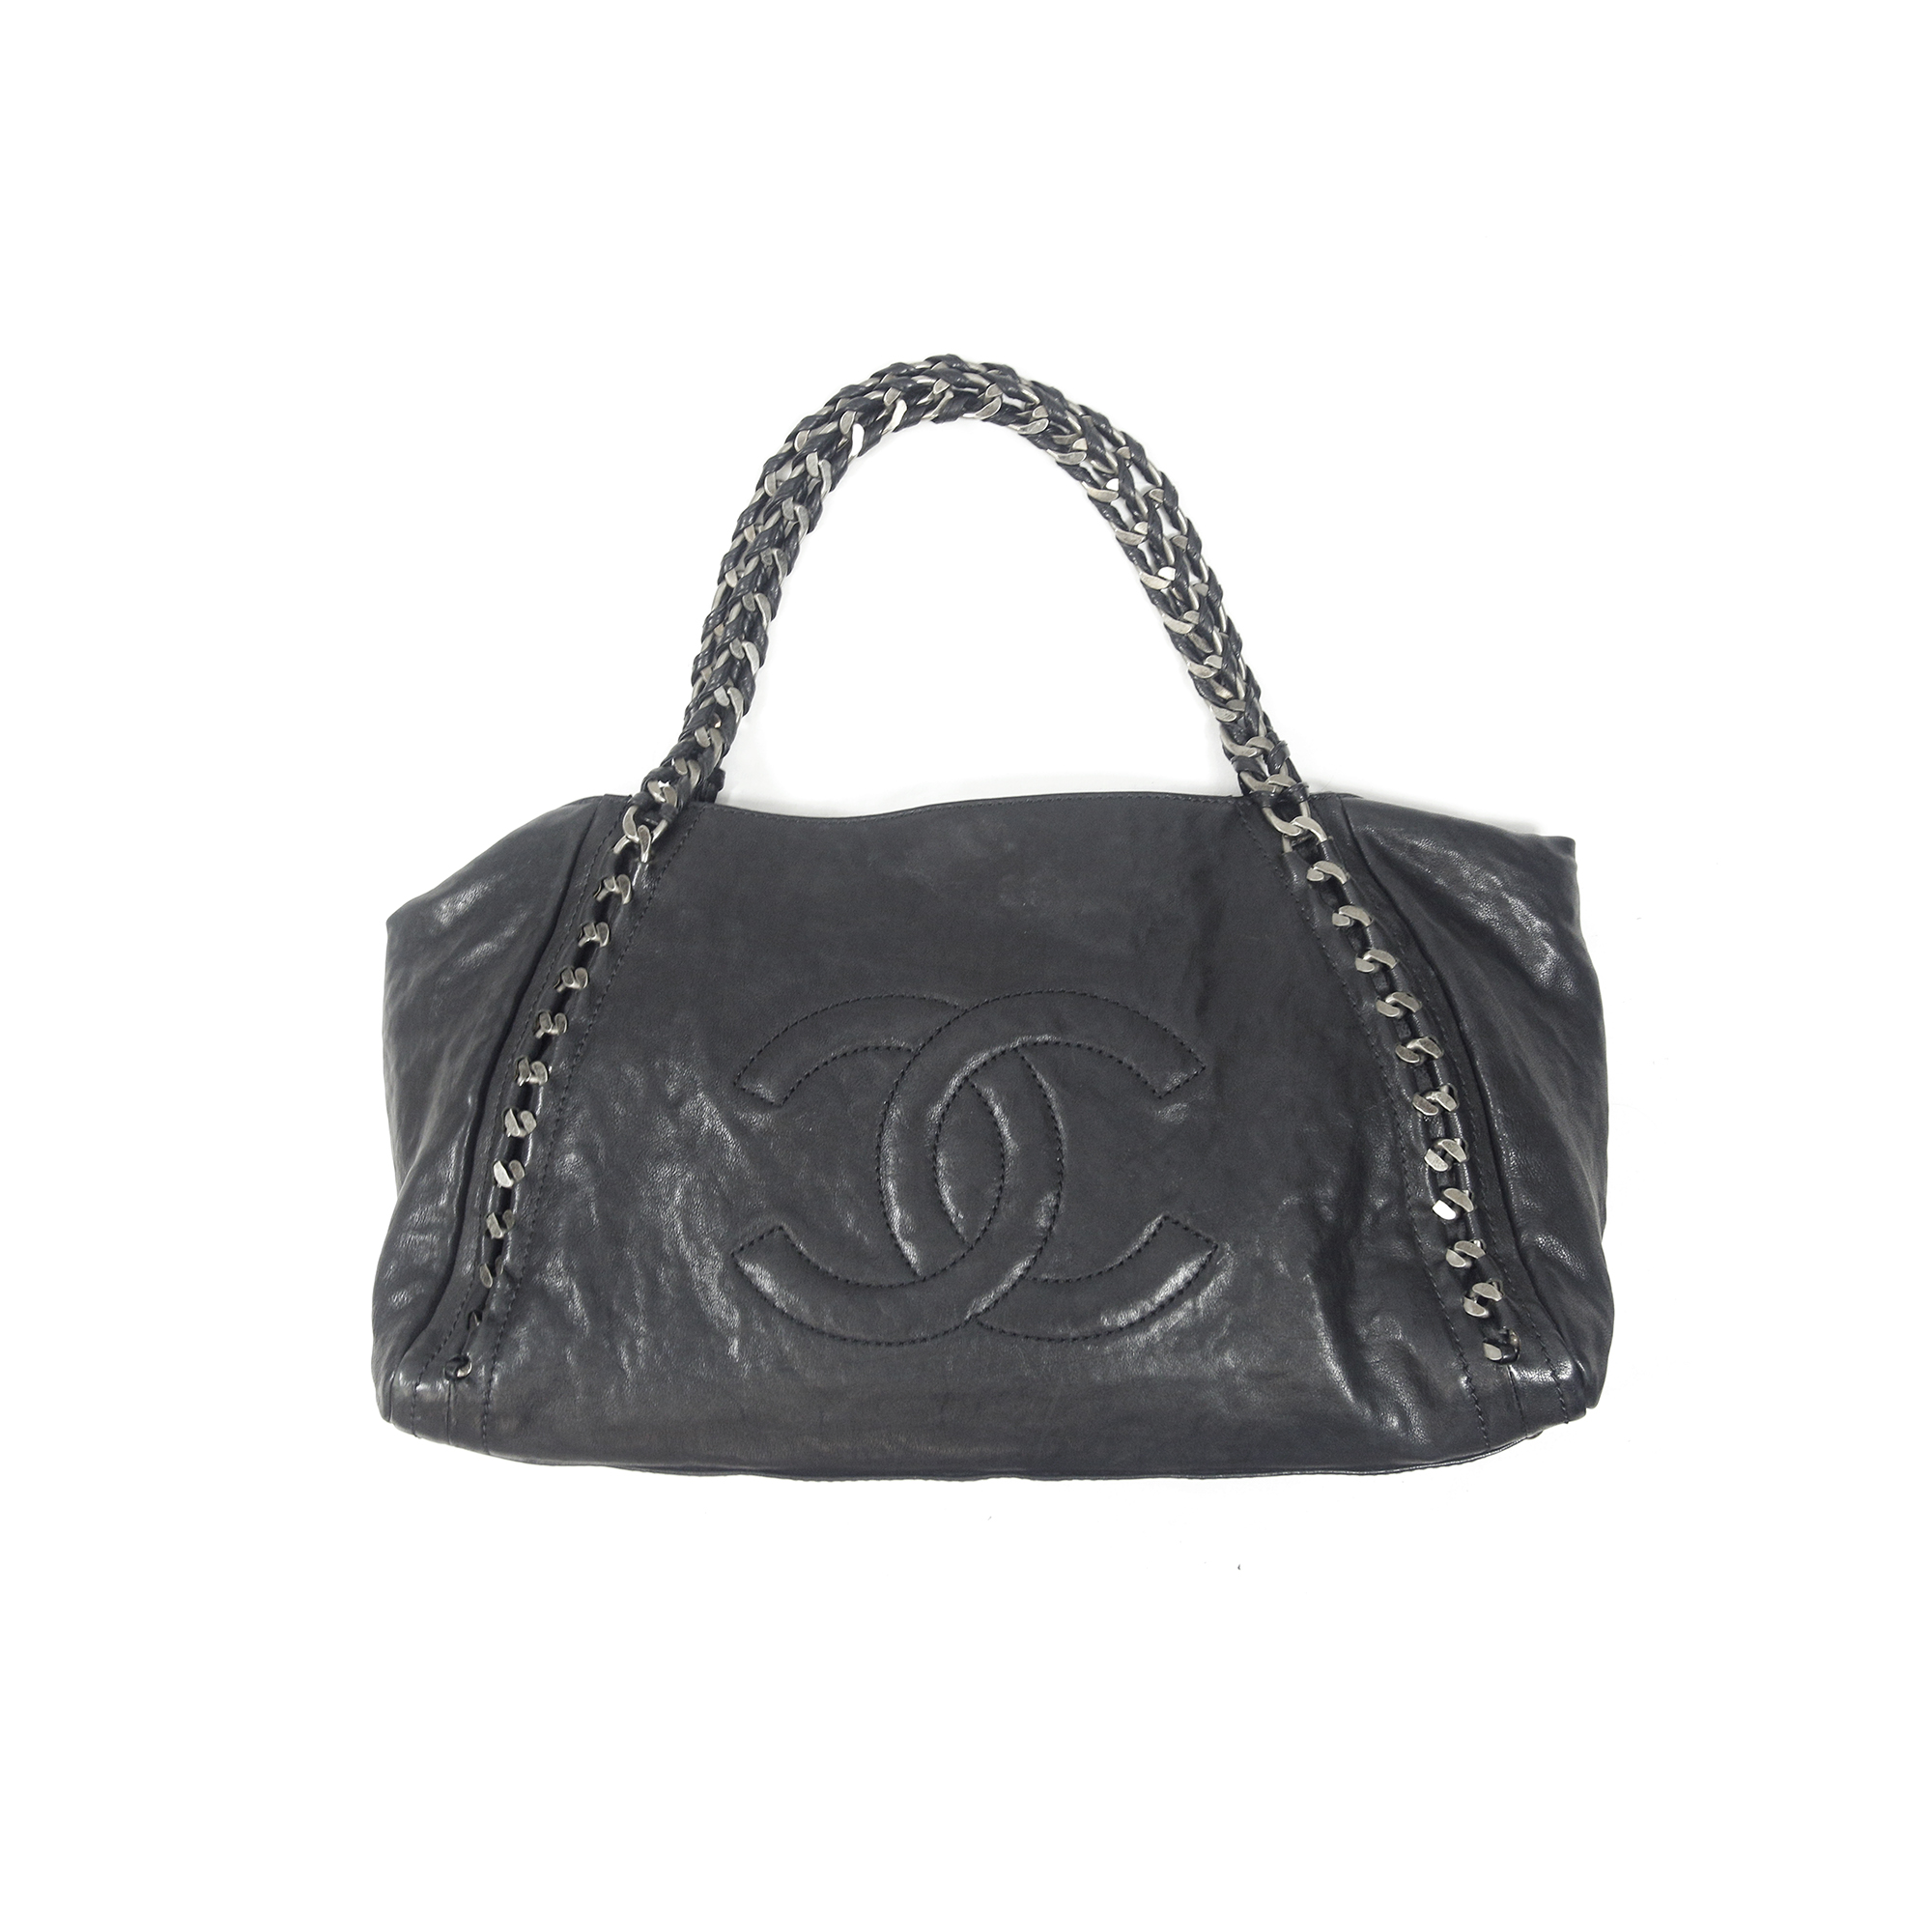 fc05a3a6cdf4 Authentic Second Hand Chanel Distressed Caviar Modern Chain XL Tote  (PSS-003-00013) | THE FIFTH COLLECTION